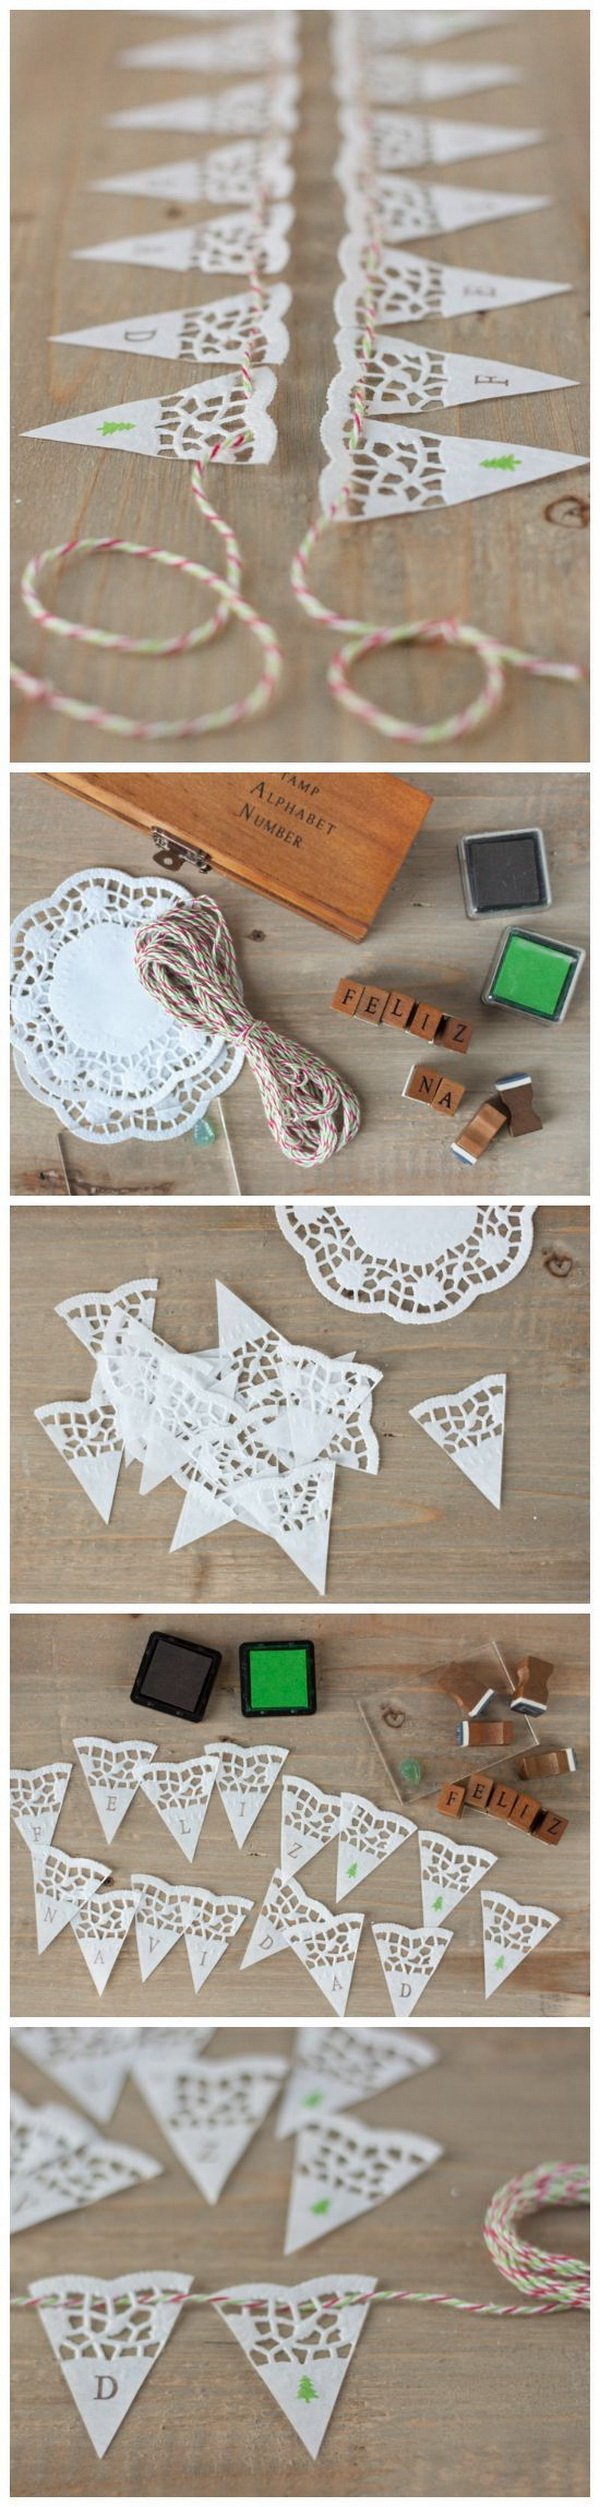 Handmade Doily Paper Banners. These paper banners are great to be used to both adorn and announce an special occasion or holiday. It is super easy and fun to make with your kids together.